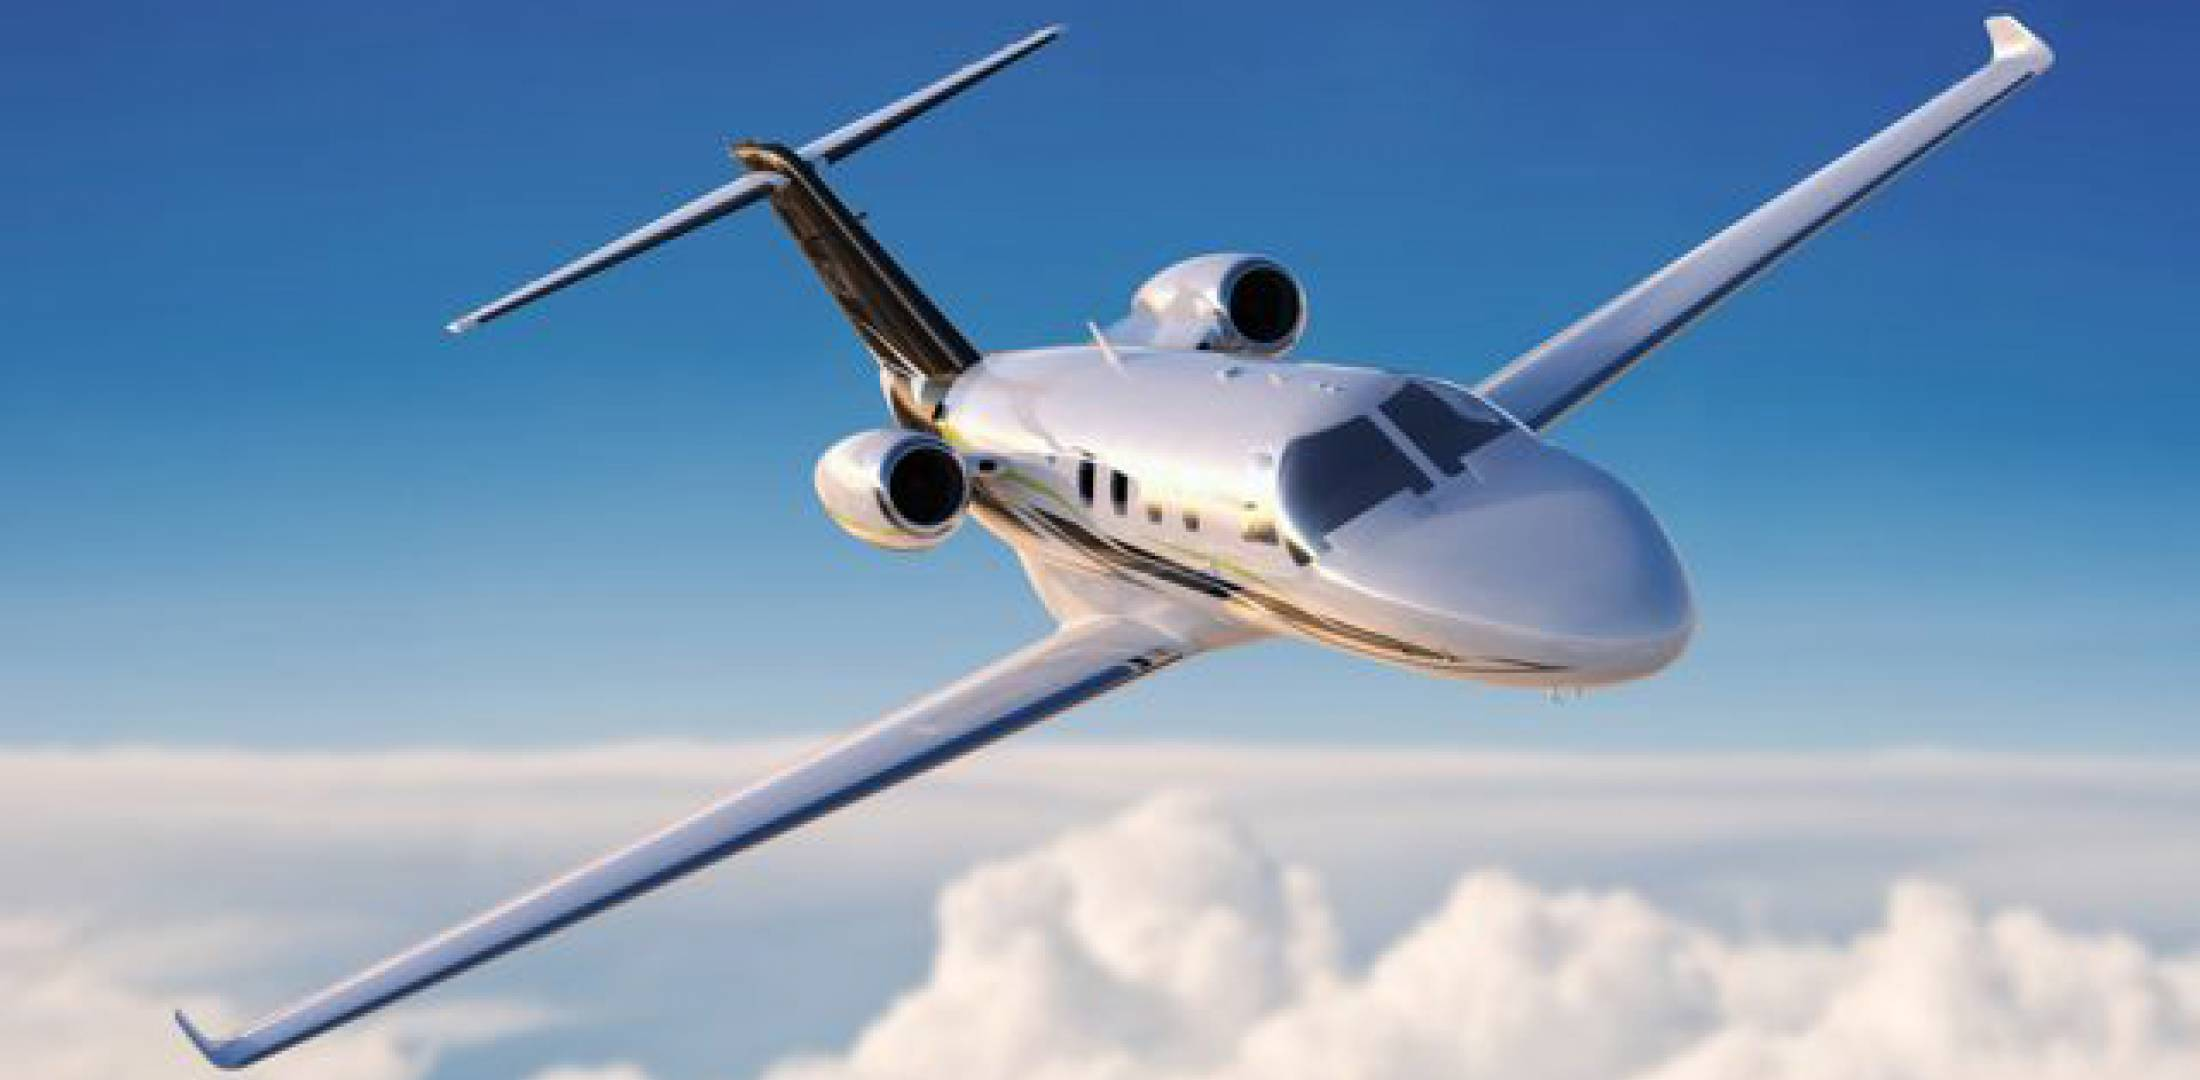 Cessna's Citation M2 fills the niche between the Mustang and CJ2+.